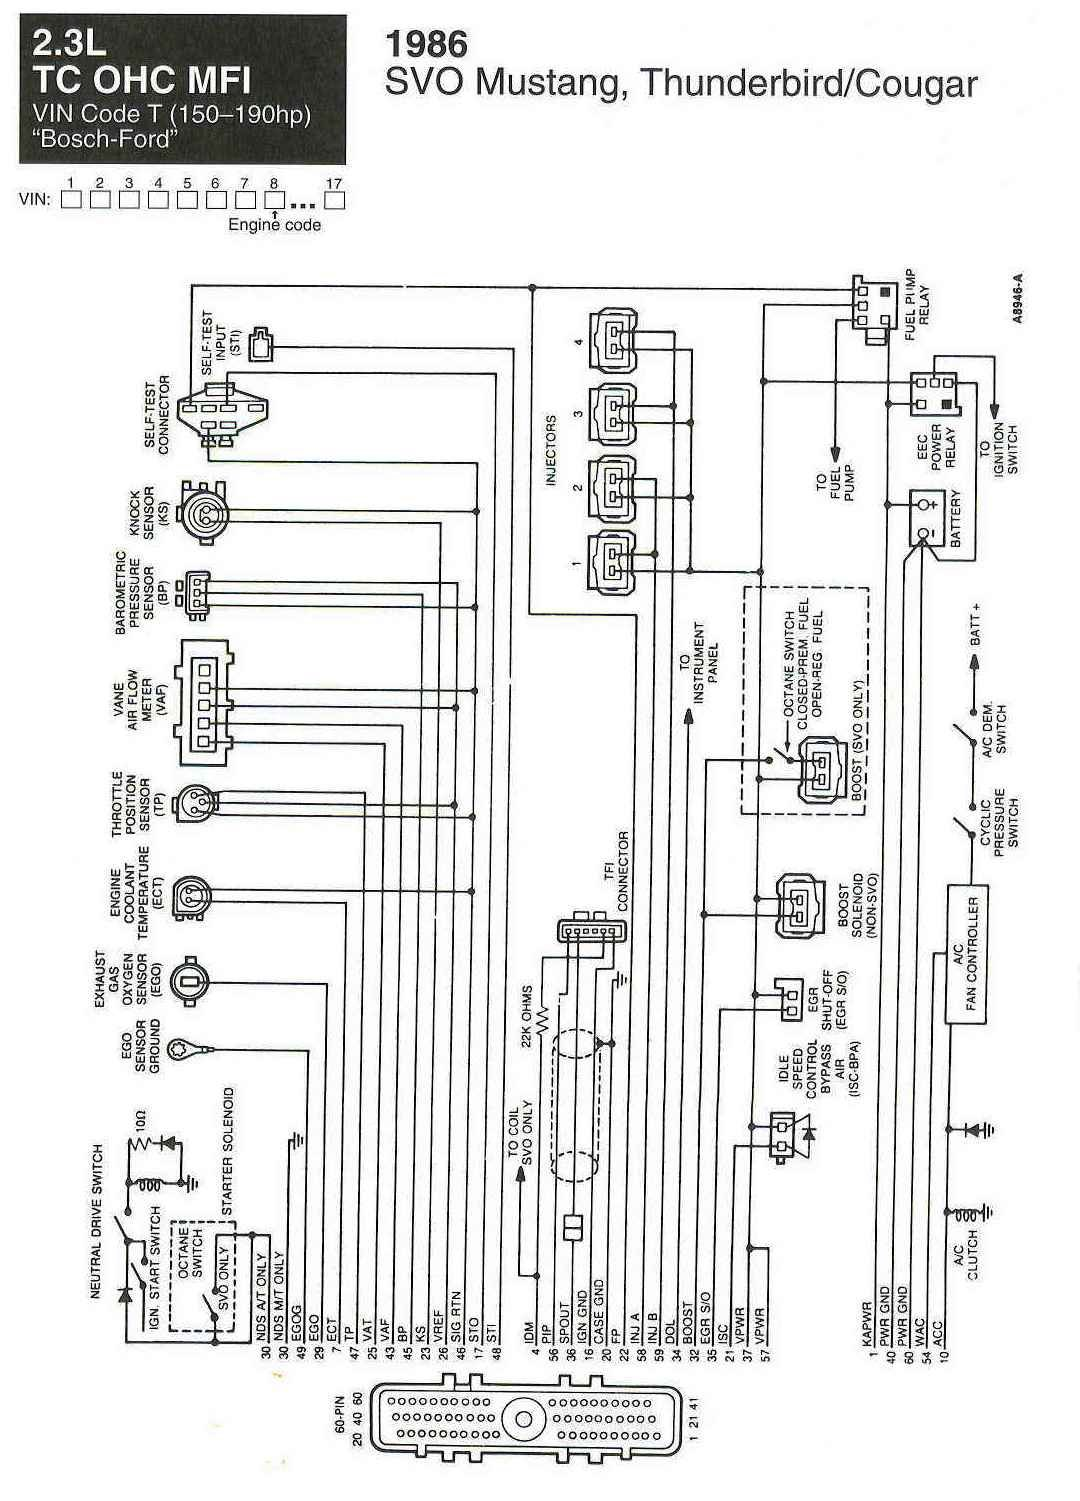 1963 ford f100 wiring diagram two way light switch canada 84 thunderbird great design of